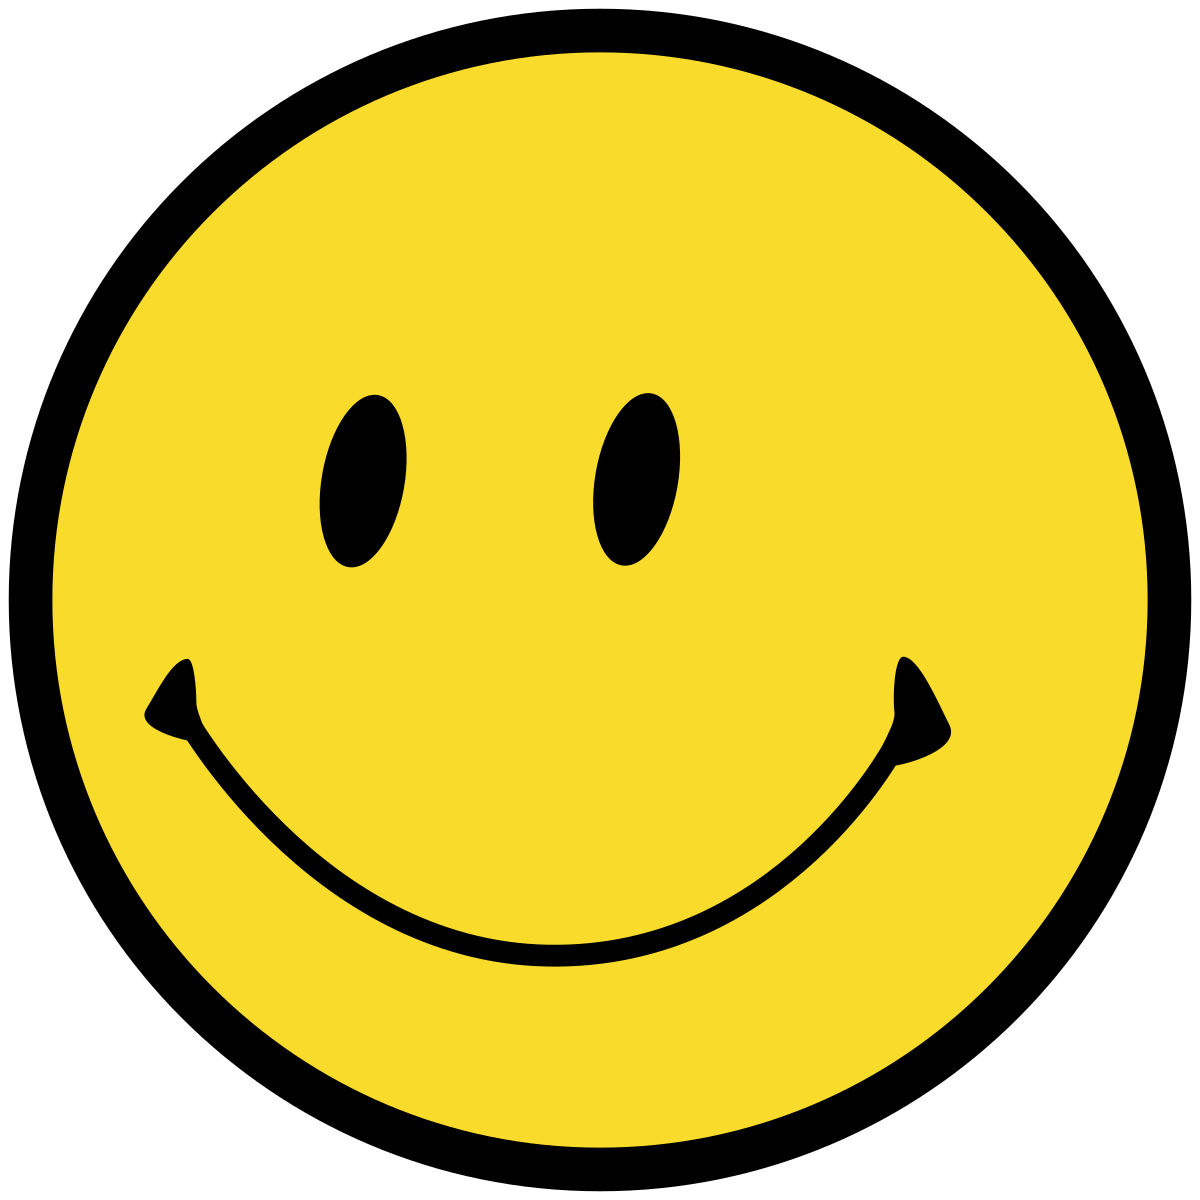 Watchmen smiley face png. Smile images group wikipedia